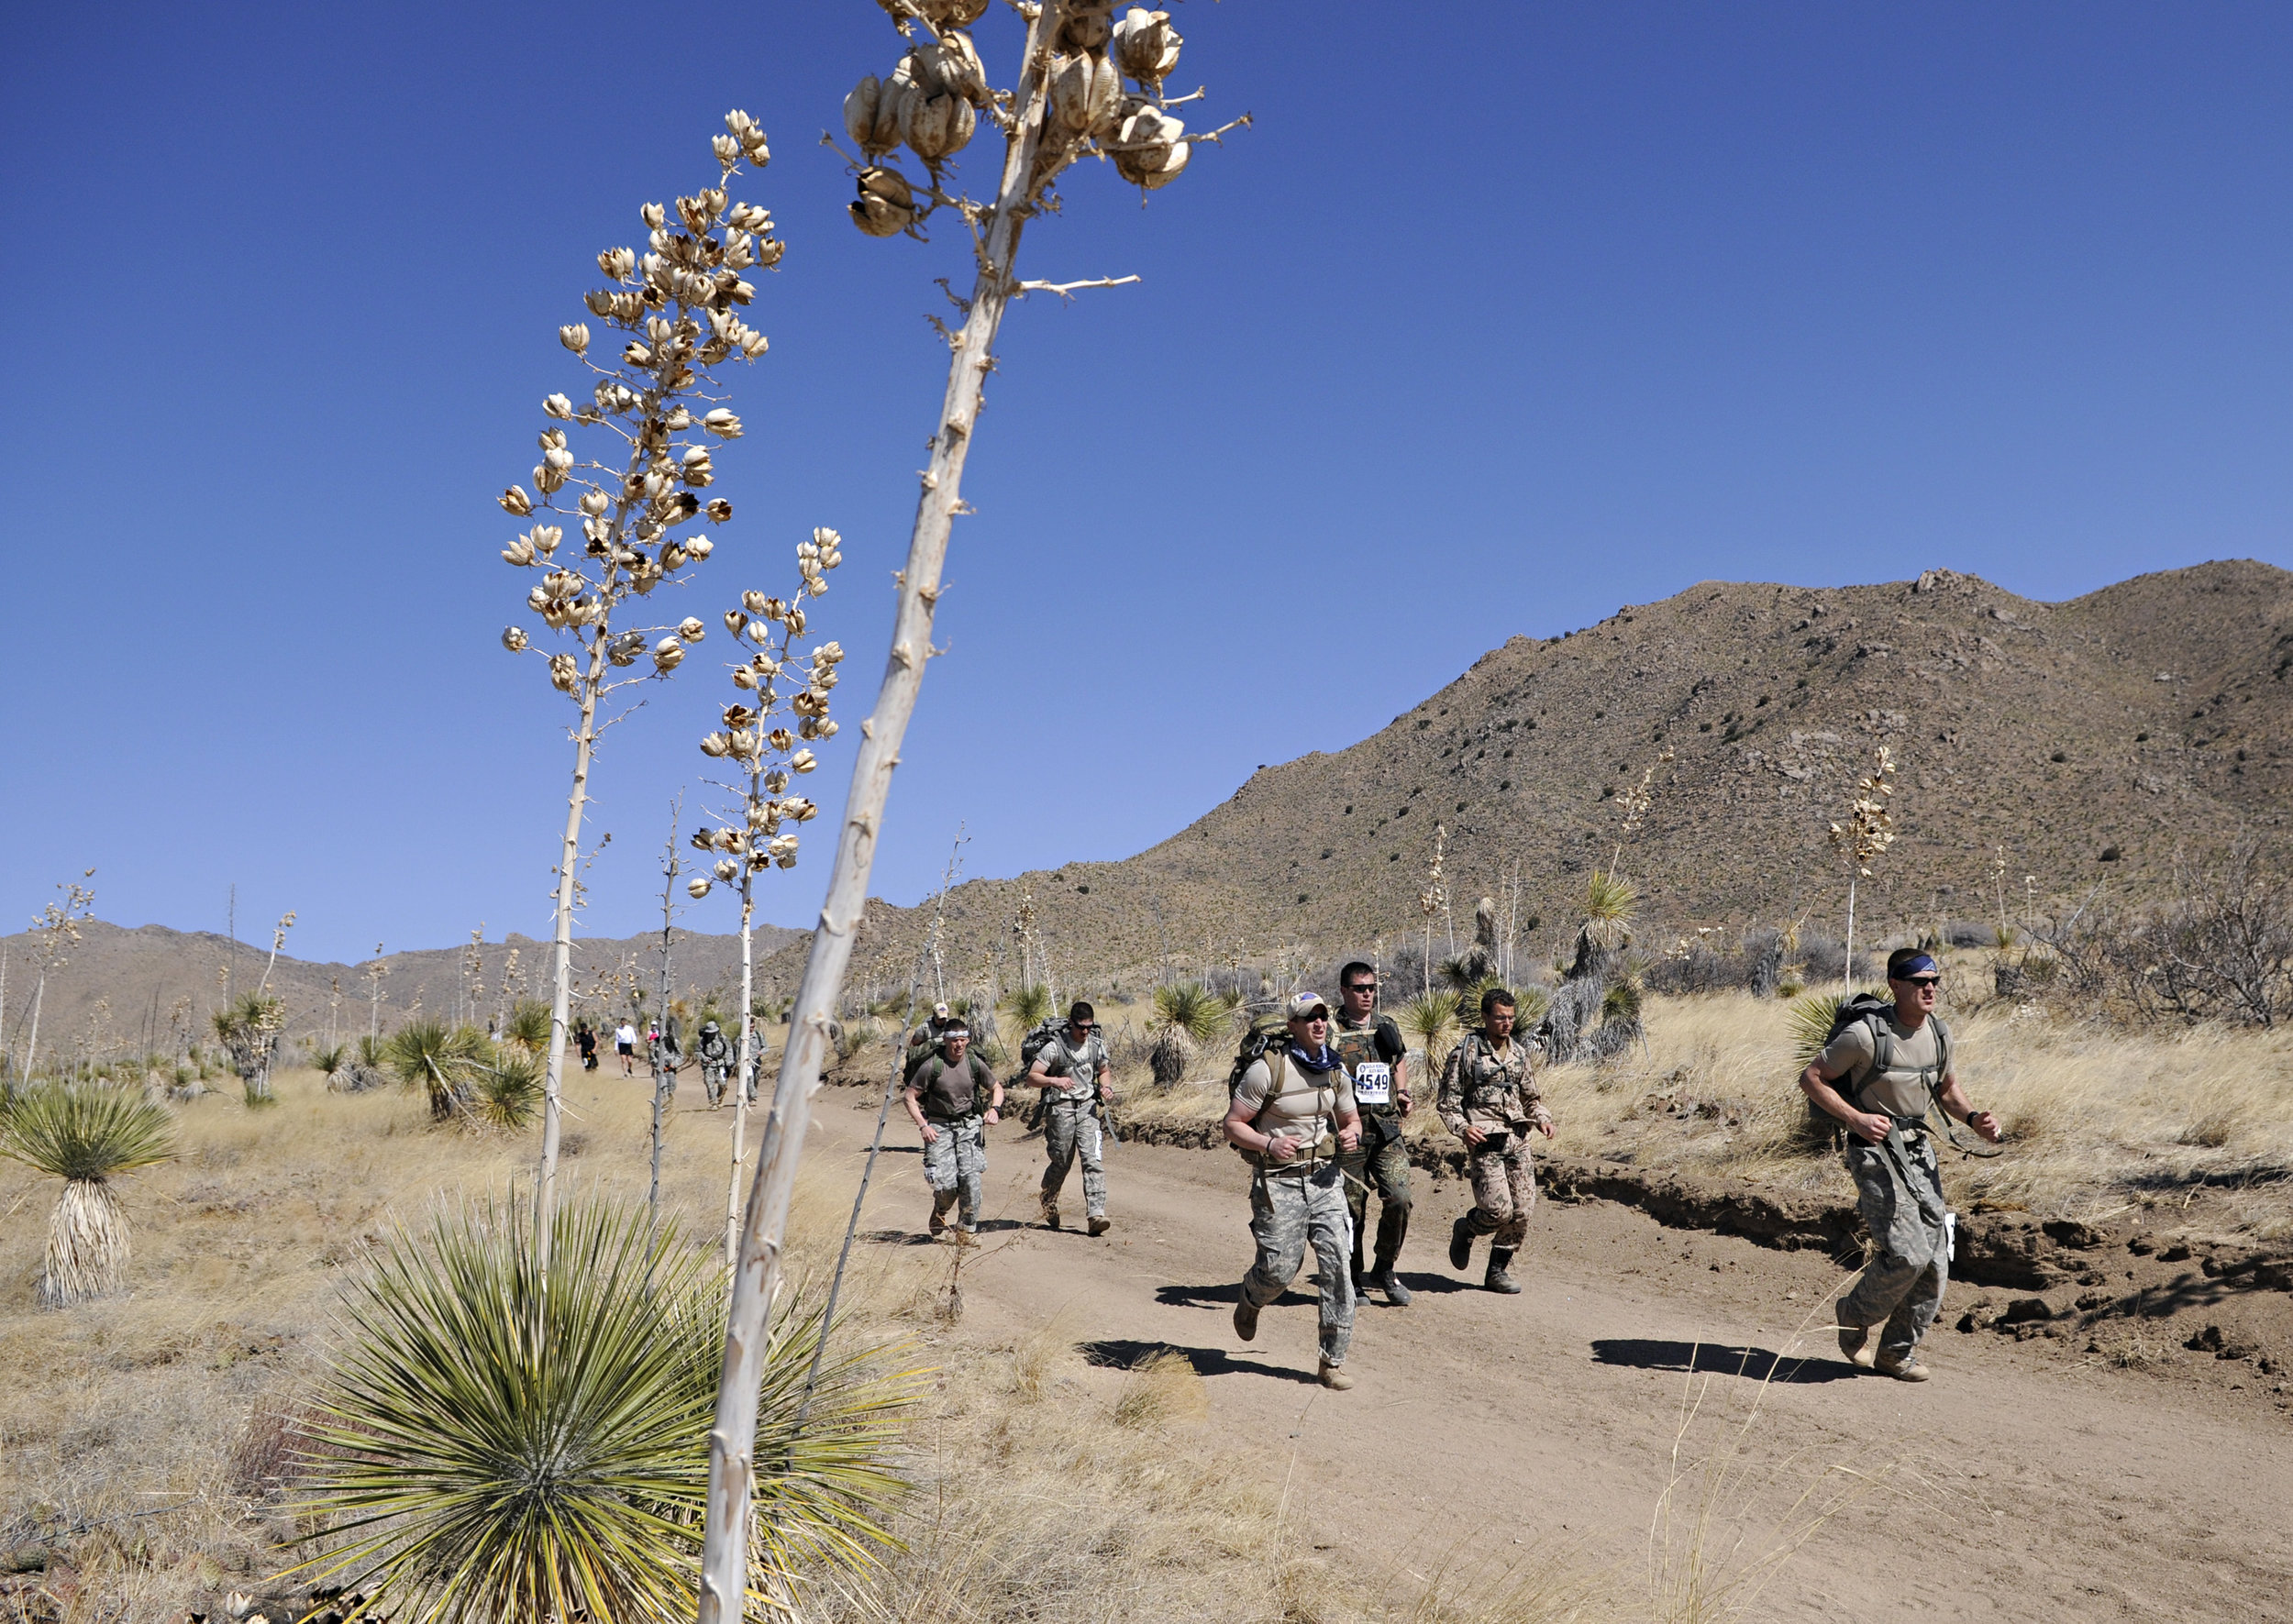 Runners pass by tall yuccas during the 22nd Annual Bataan Memorial Death March at White Sands Missile Range, Sunday, March 27, 2011. (Morgan Petroski/Albuquerque Journal)